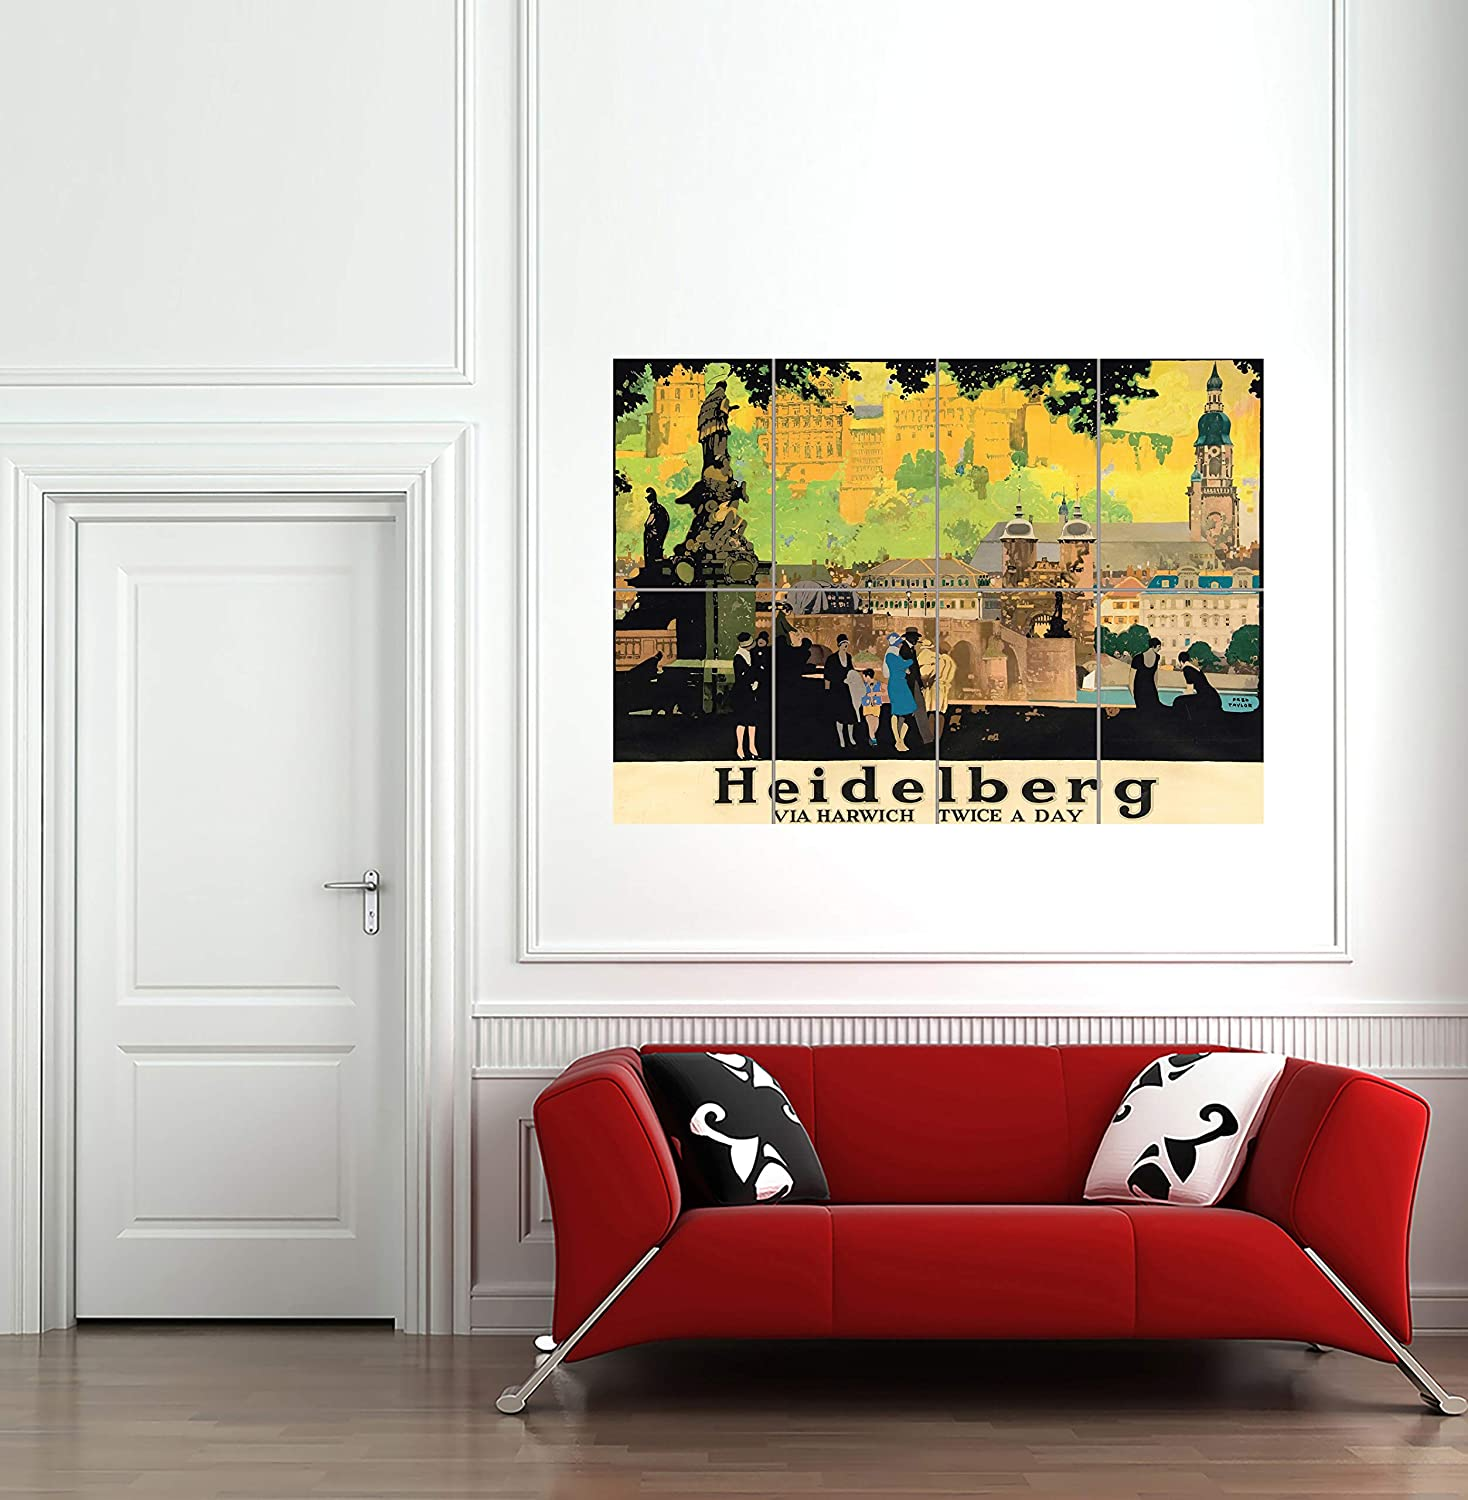 Advert Heidelberg Rail City Painting Giant Wall Art Poster Print